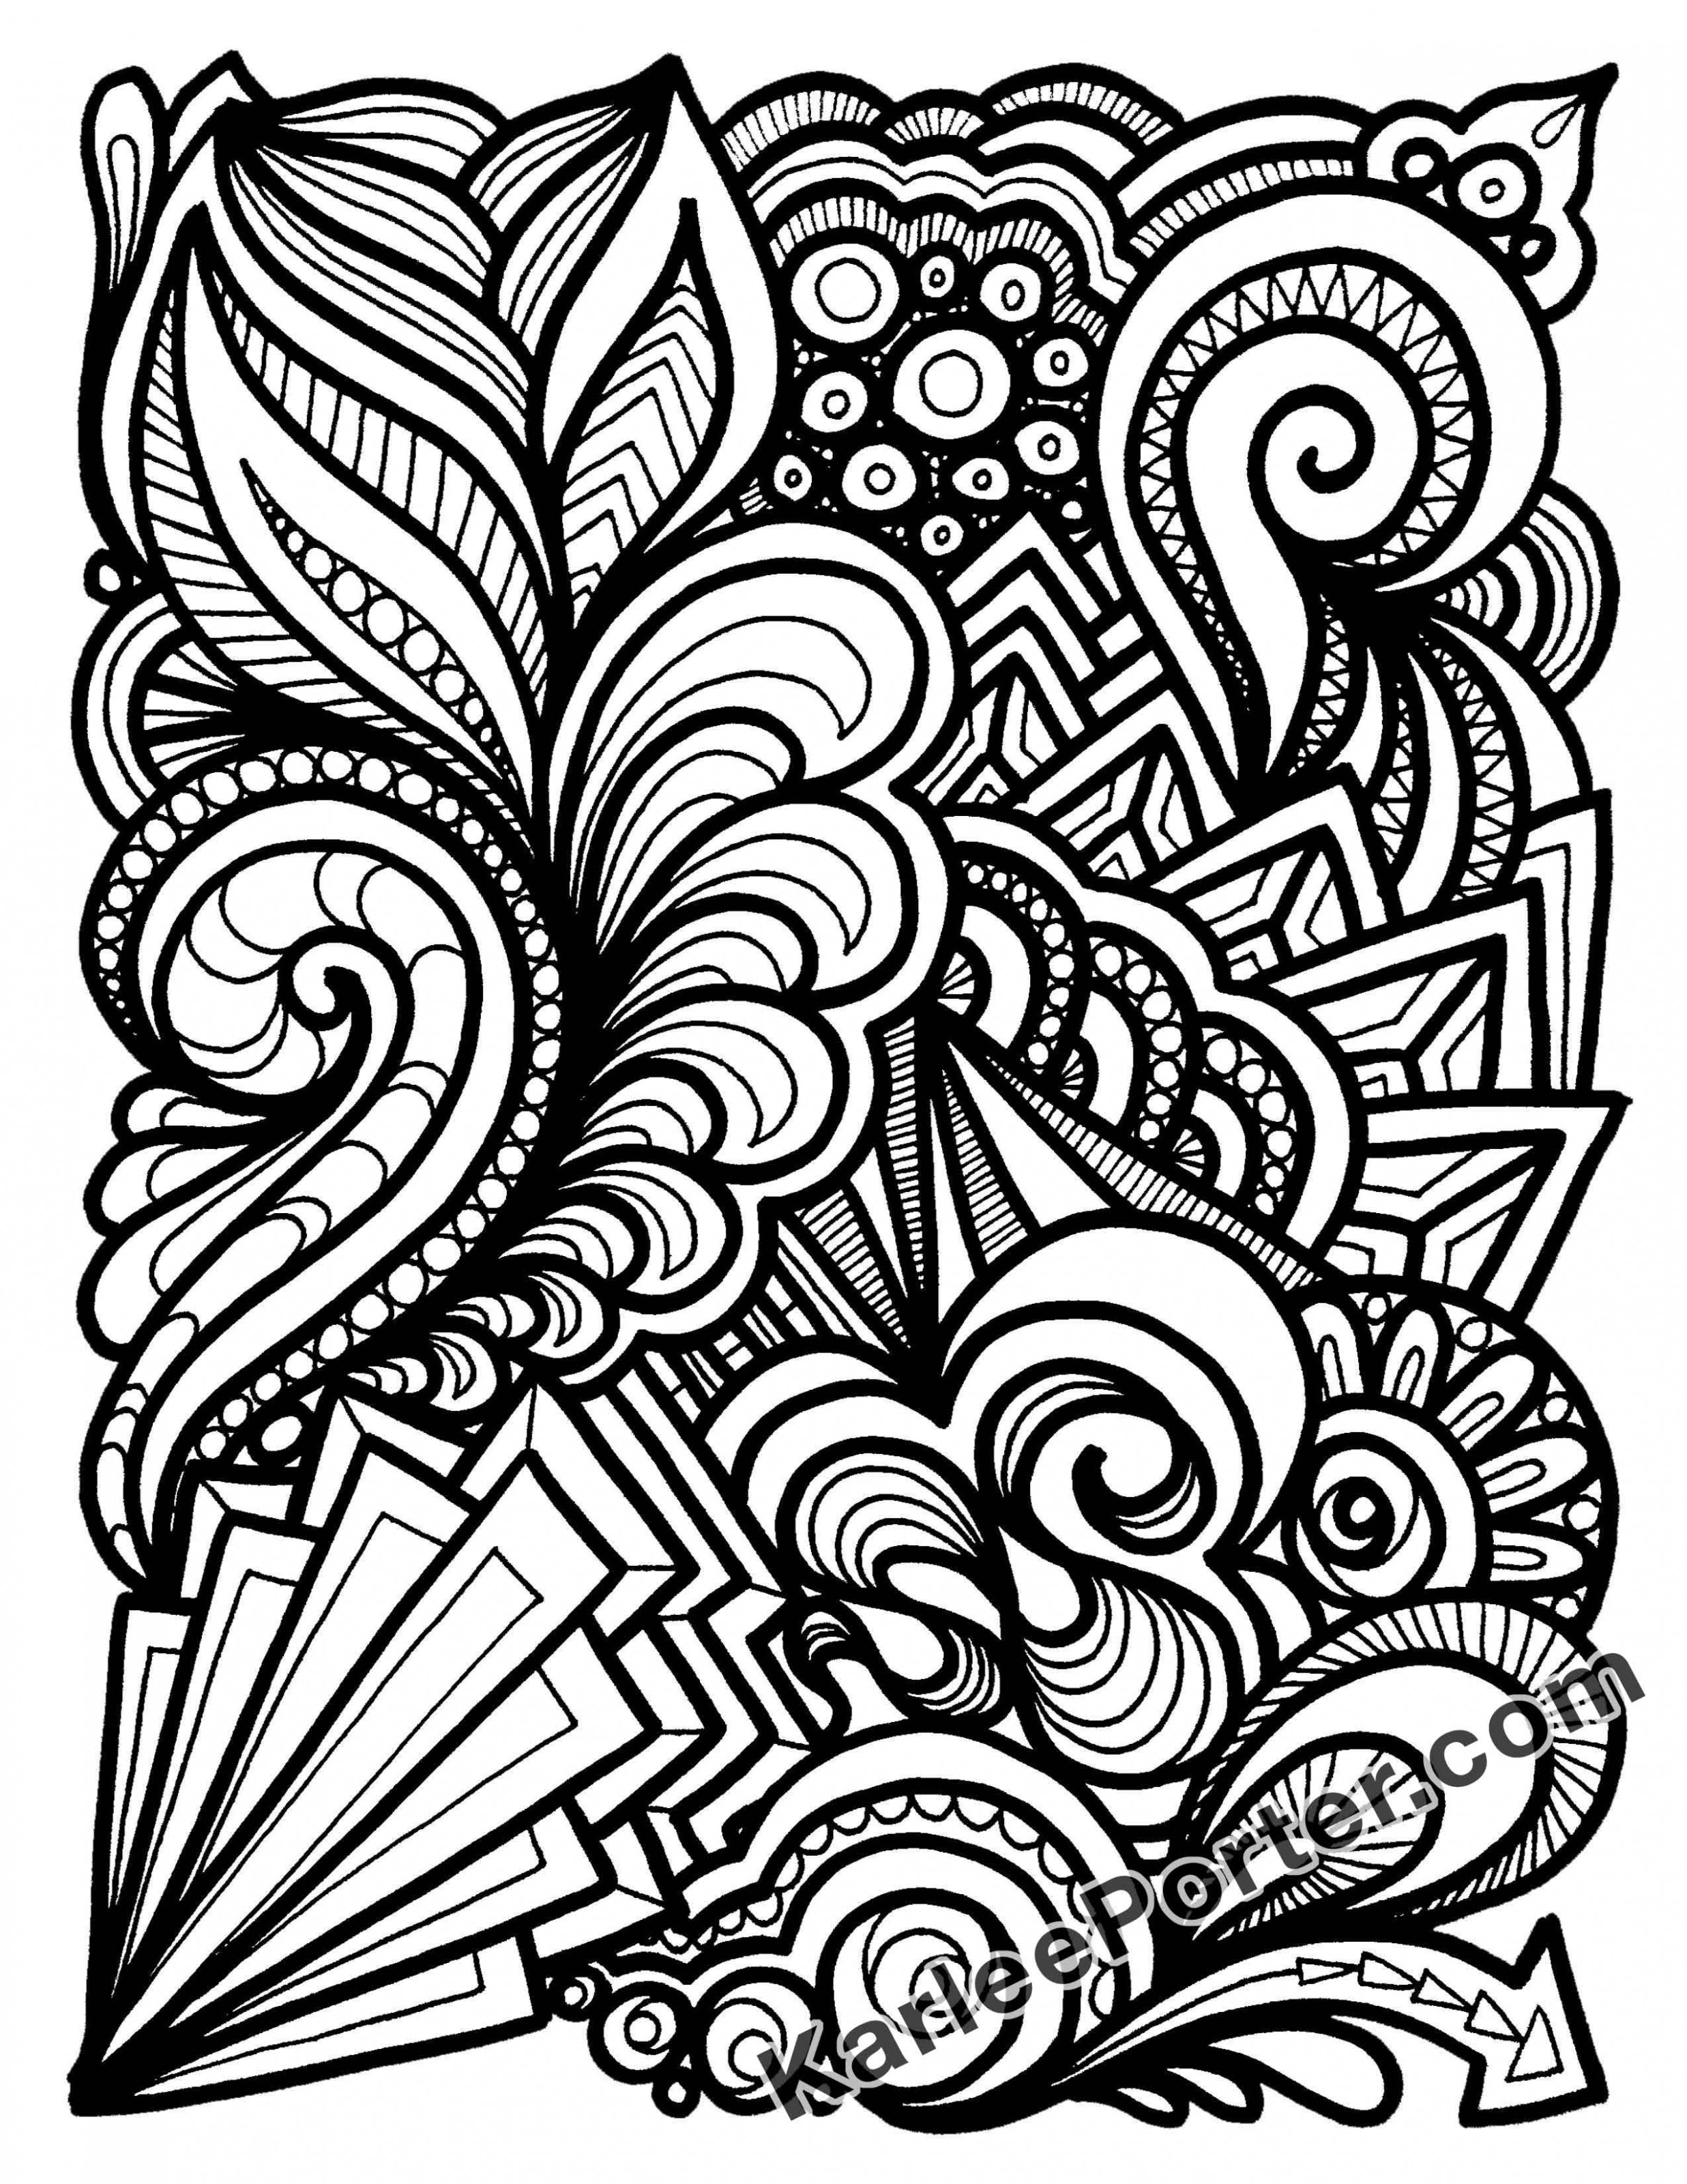 Graffiti Quilting Coloring Book – Downloadable – Karlee Porter - quilt coloring book